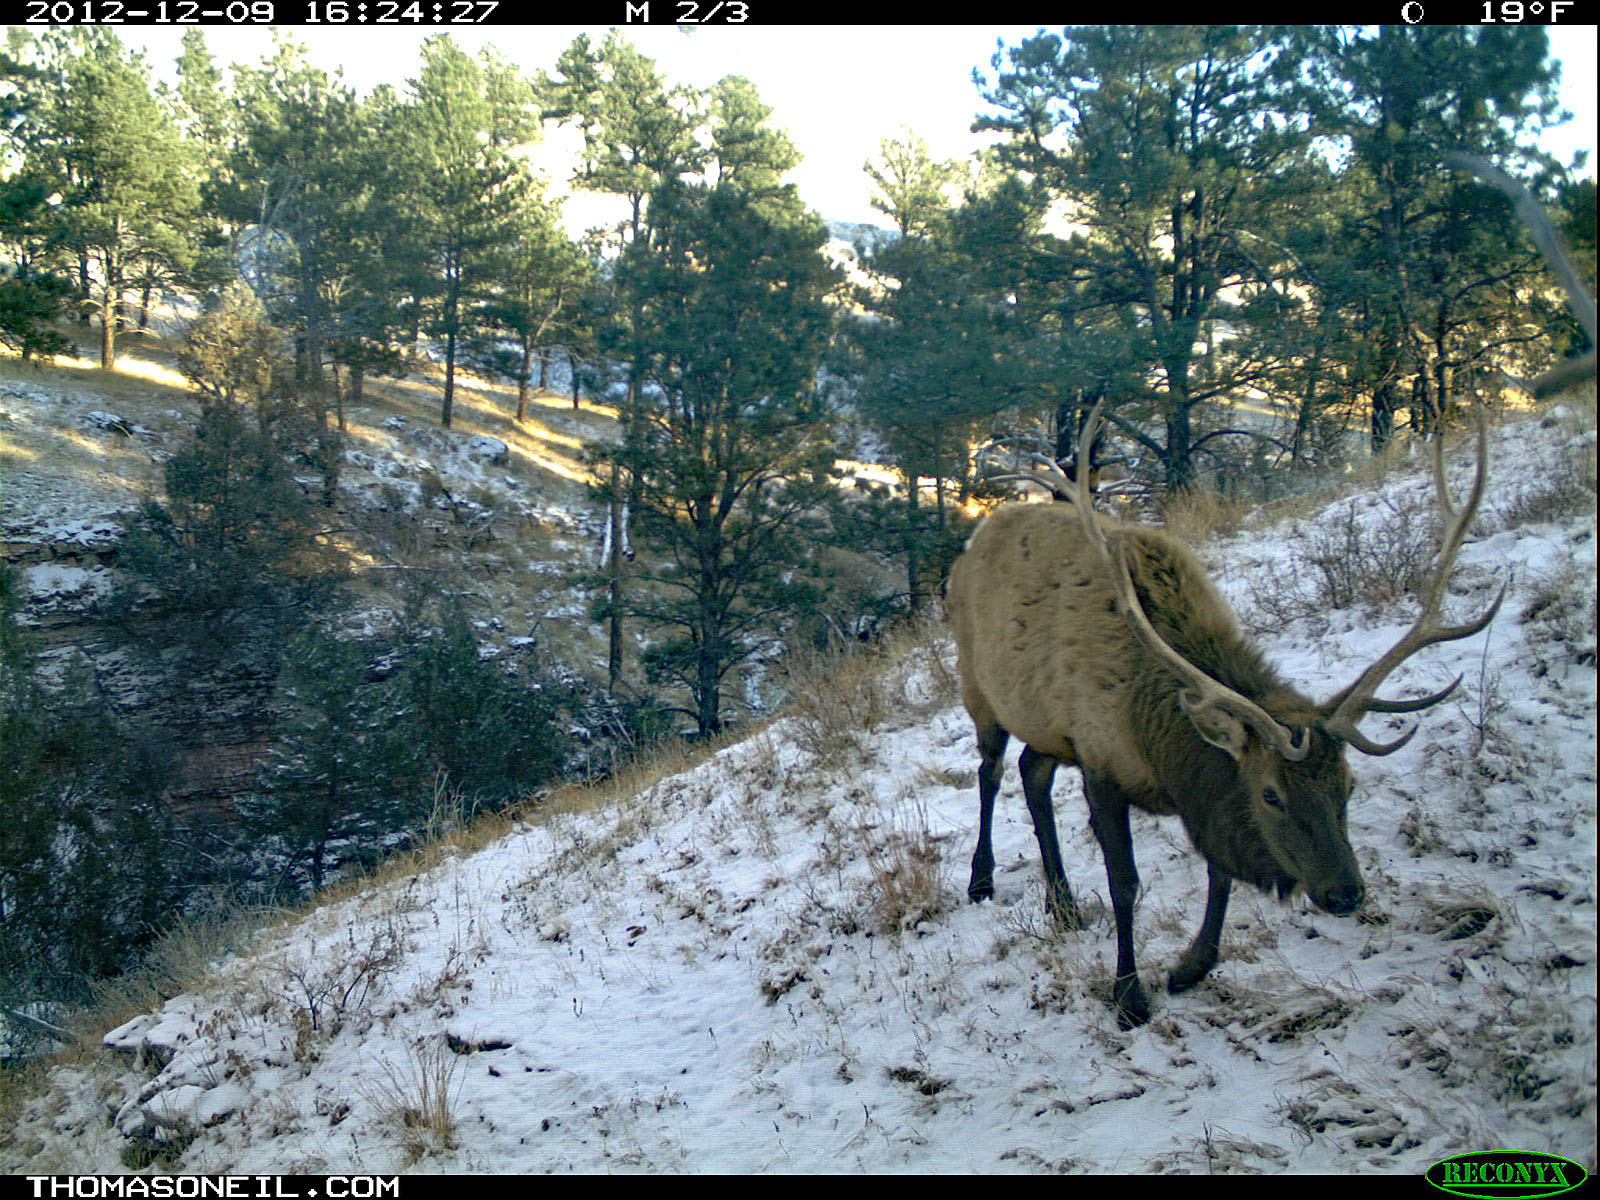 Elk, trailcam photo from Dec. 9, 2012, Wind Cave National Park, South Dakota.